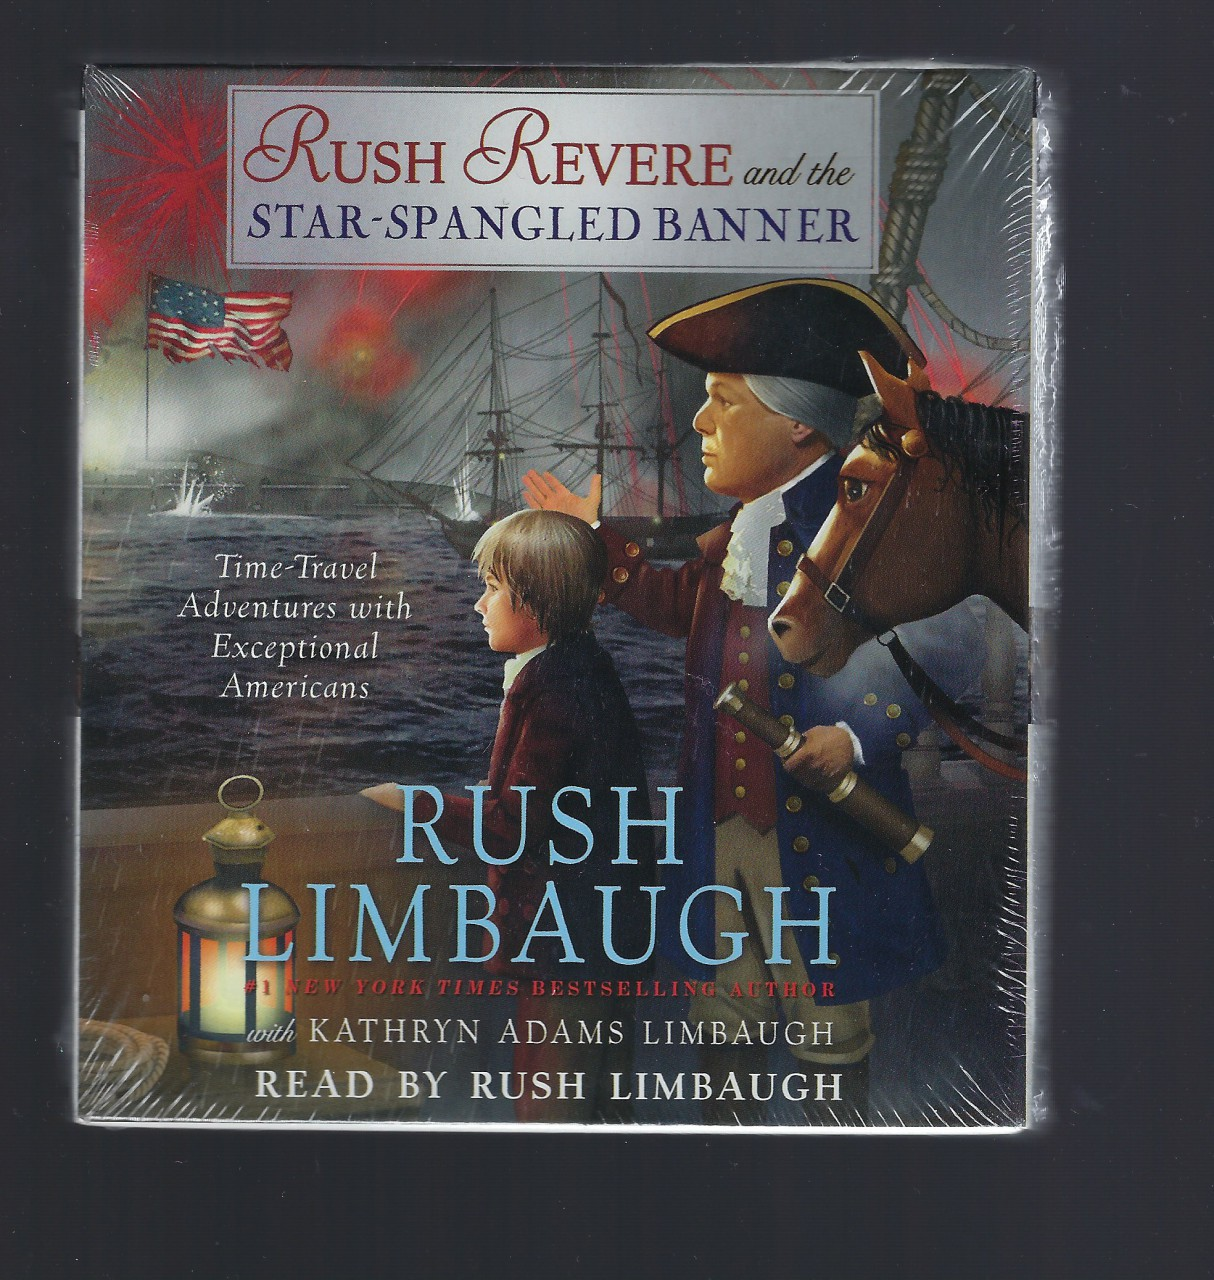 Rush Revere and the Star-Spangled Banner Audiobook, Rush Limbaugh